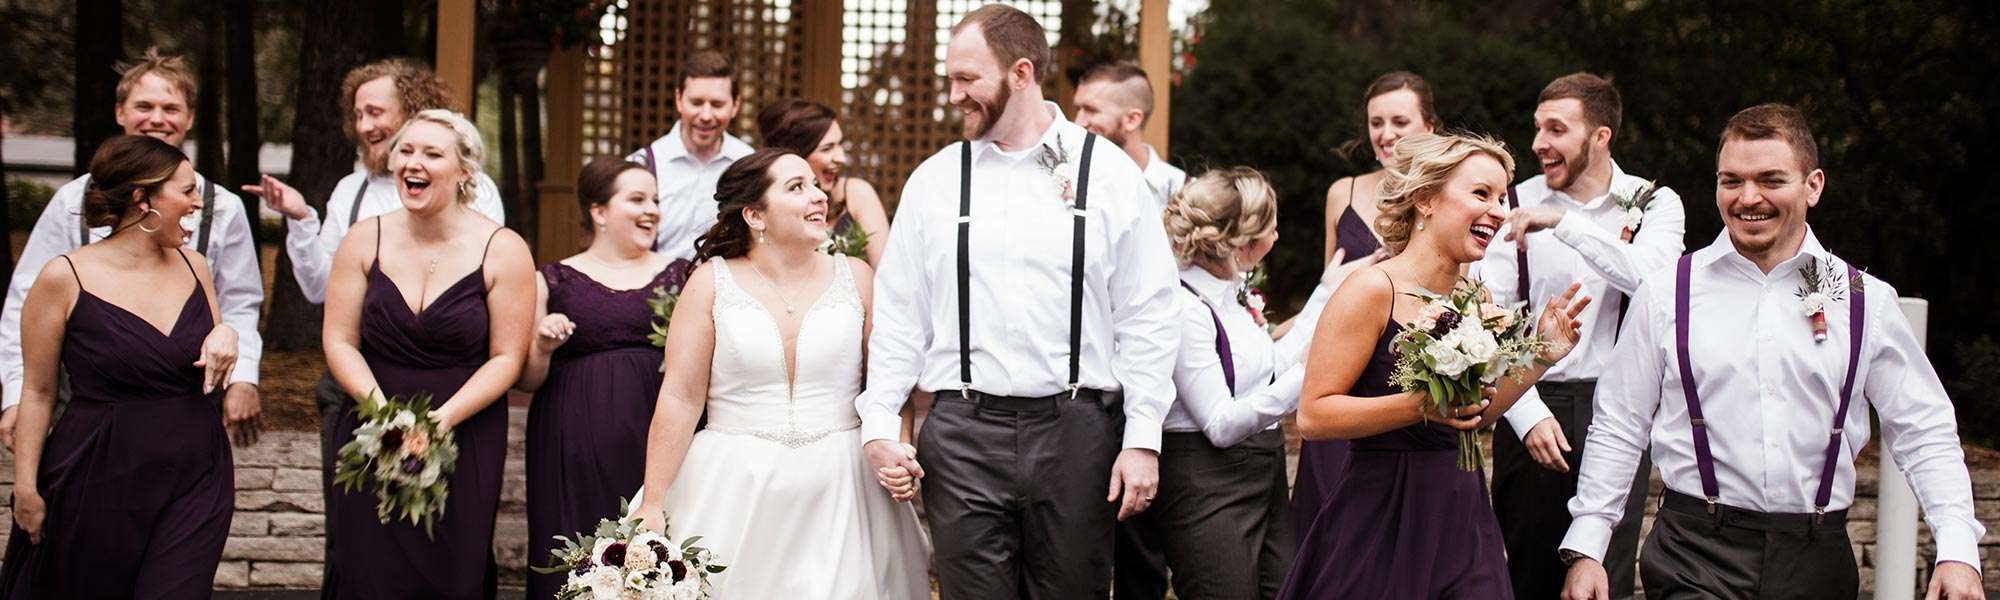 Danielle and Ryan marry at the Red Circle Inn in Nashotah WI